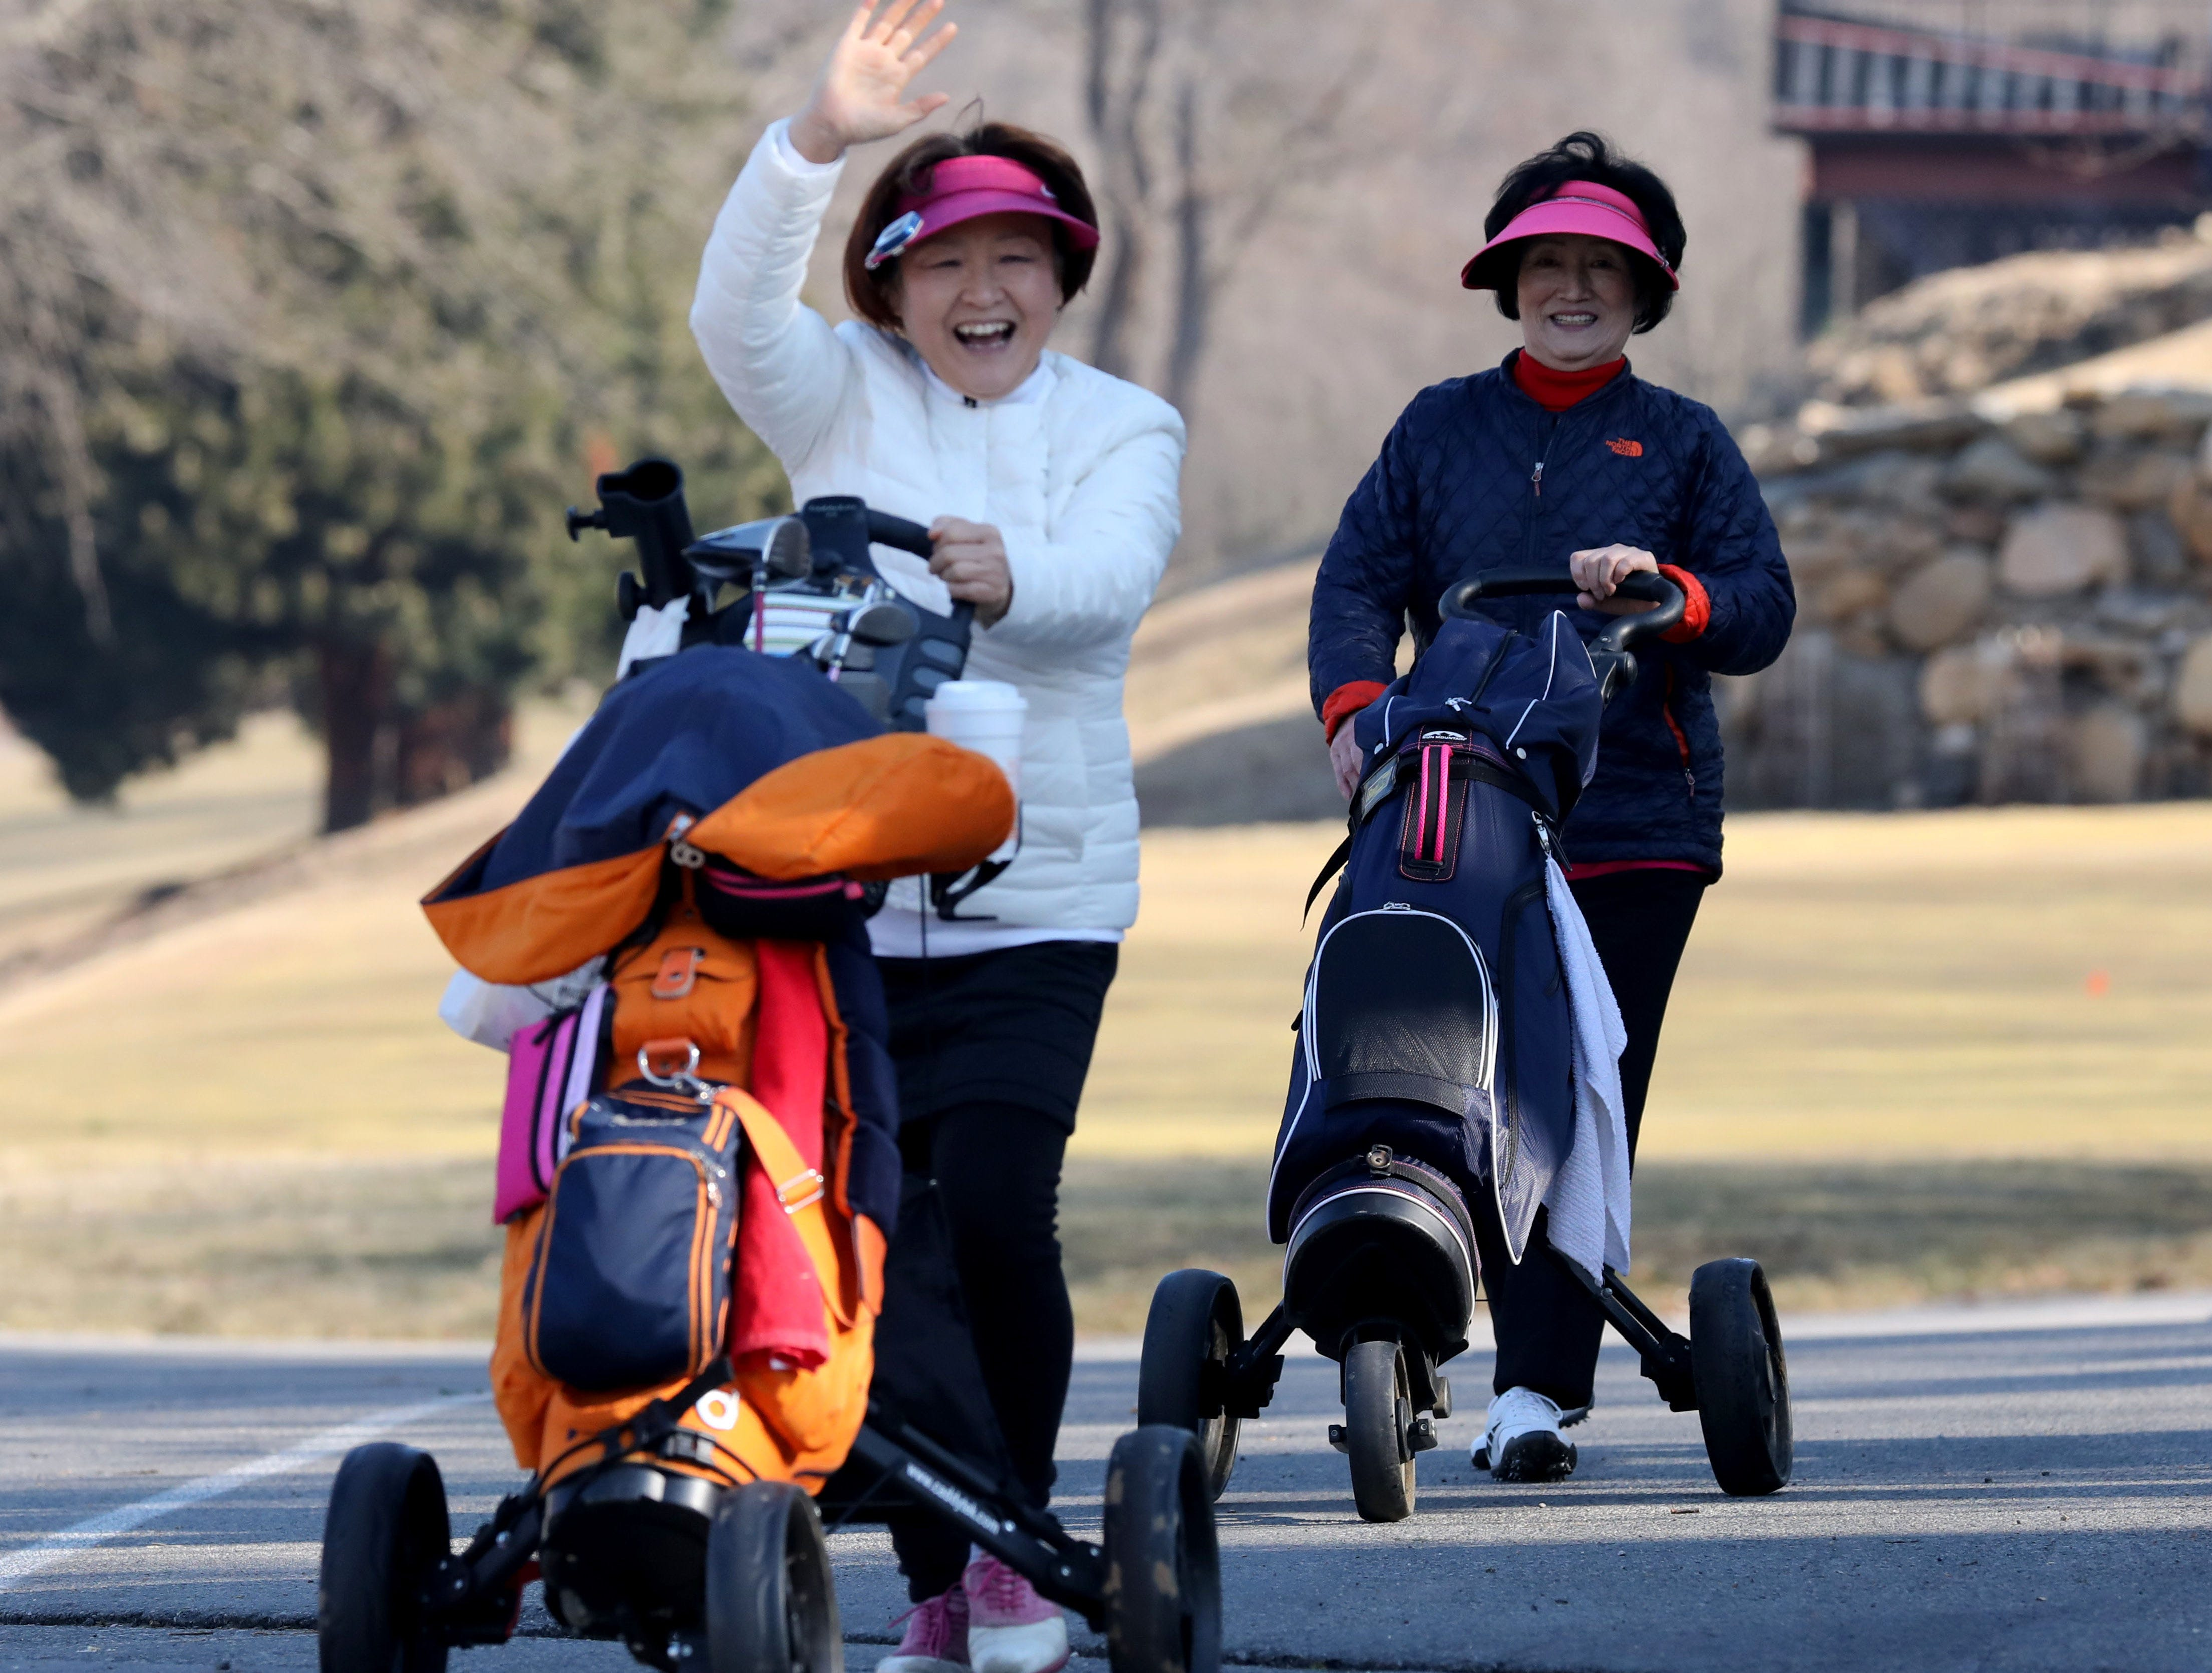 "Jeong Soon Choi and Young Ye Chung both from Yonkers head for the first tee after waiting out a three hour ""frost delay"" during the opening day of golfing at Sprain Lake Golf Course in Yonkers, March 20, 2019."